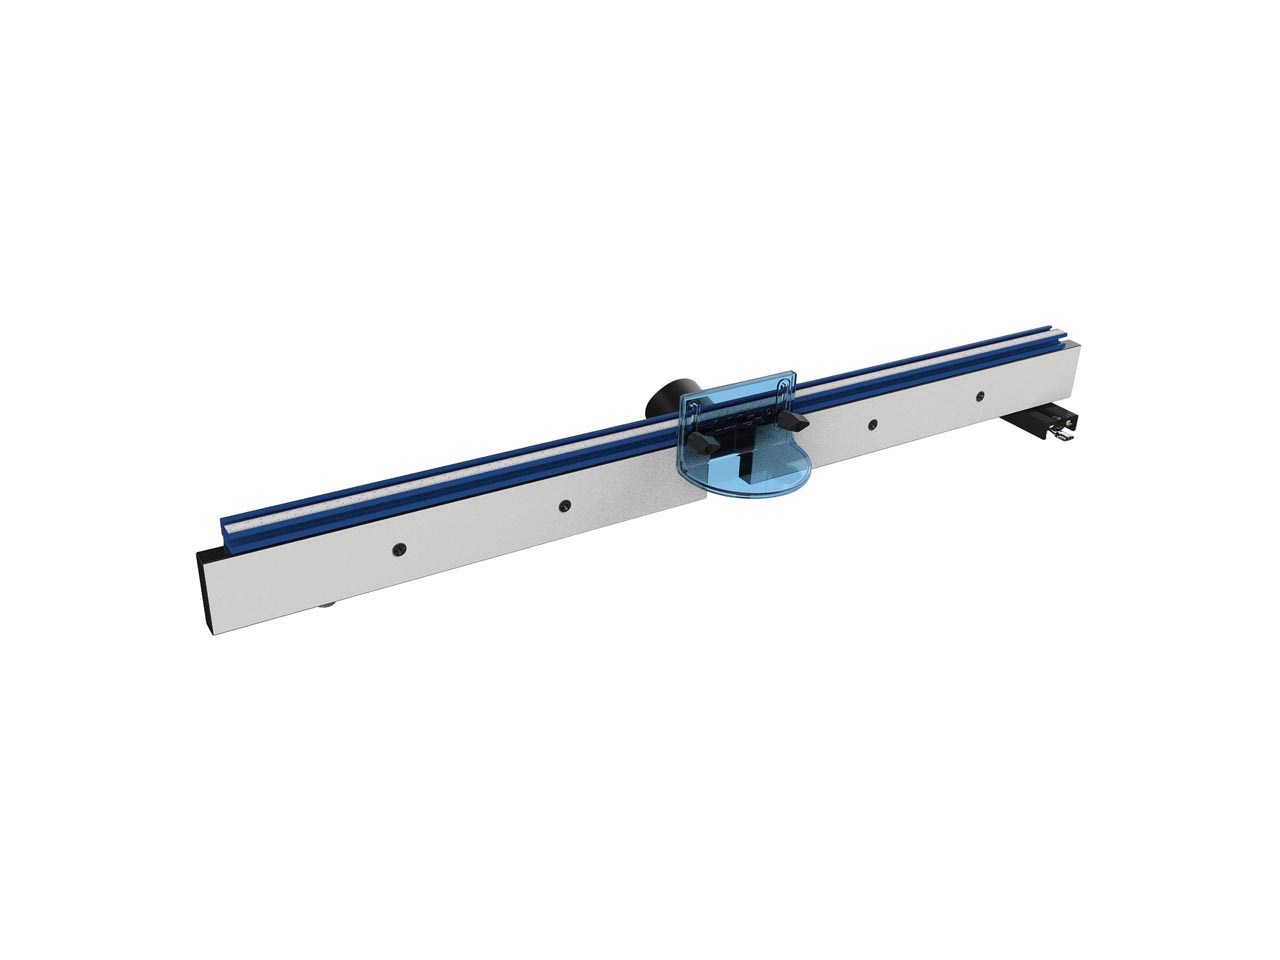 Kreg psr1015 precision router table fence prs1015 greentooth Images